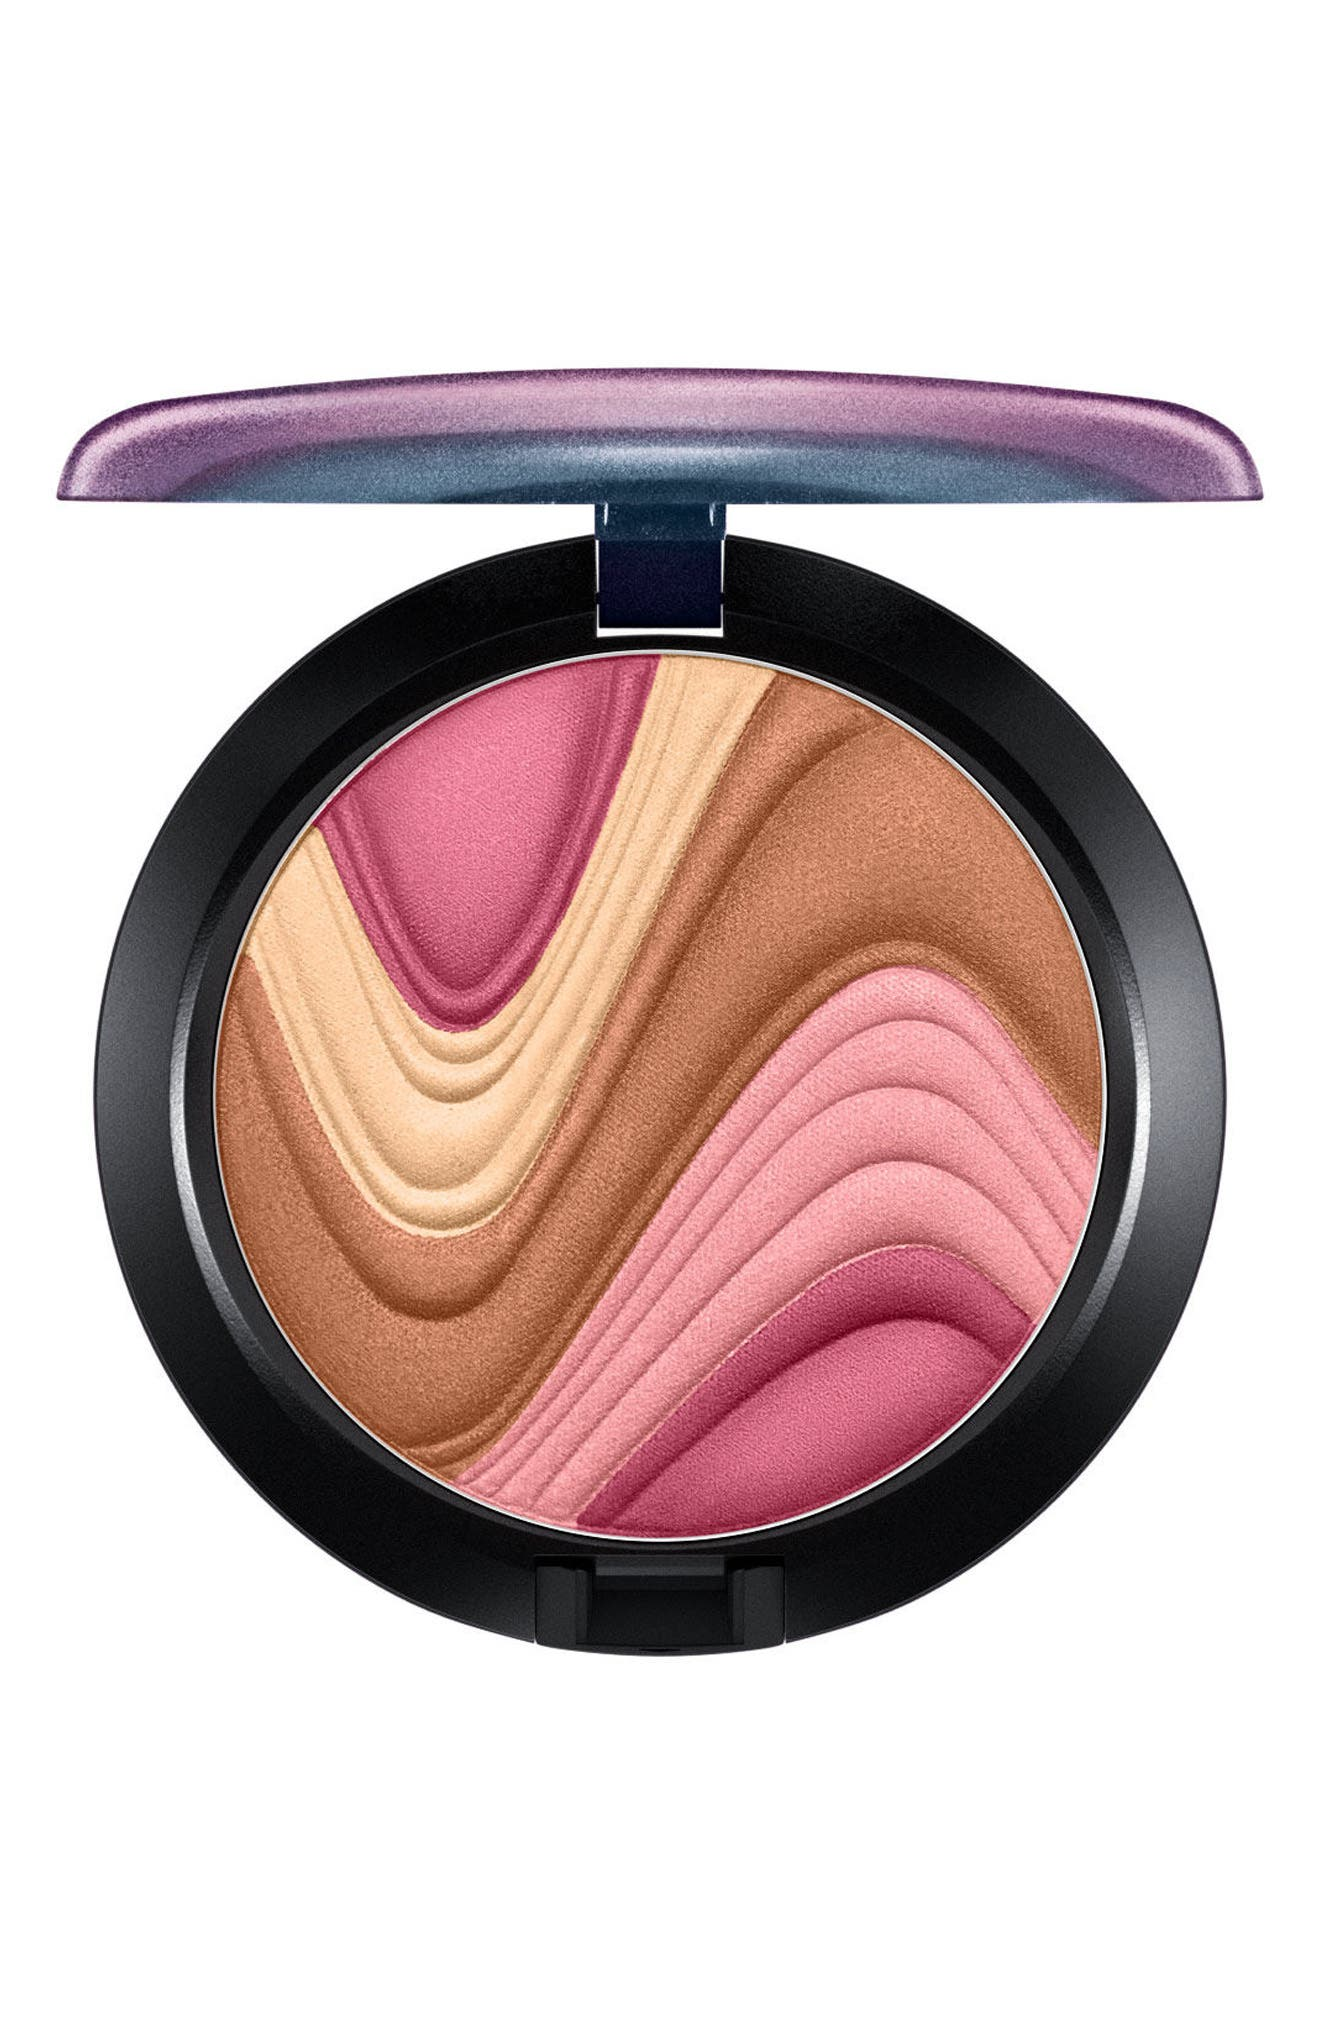 MAC Mirage Noir Pearlmatte Face Powder (Limited Edition)